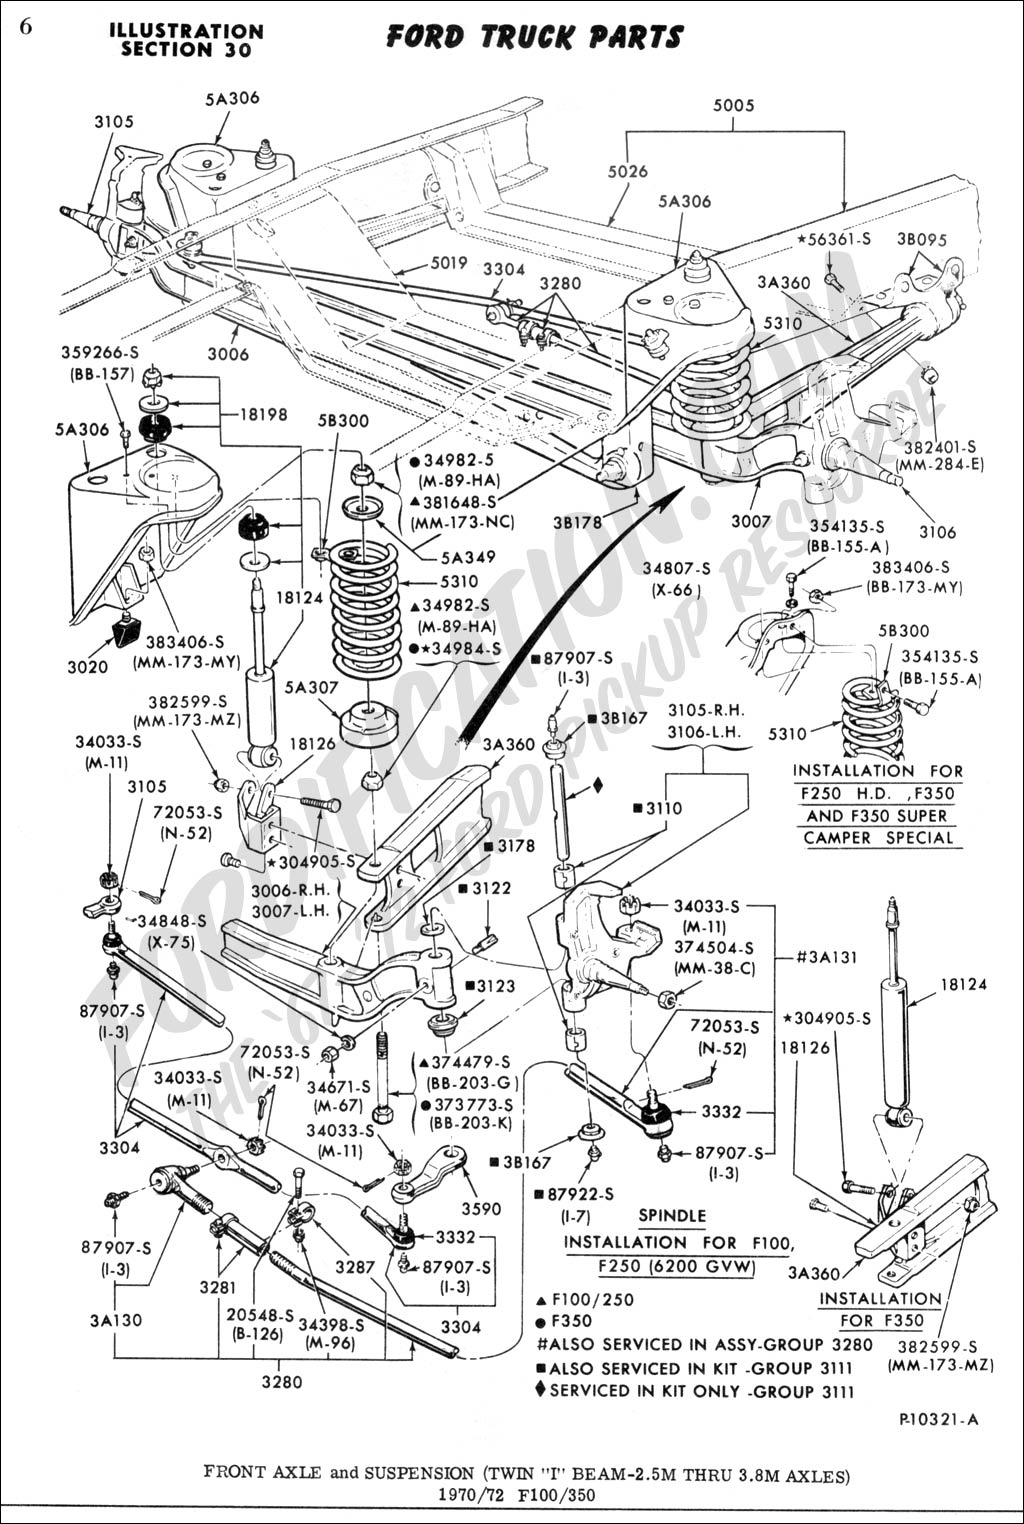 hight resolution of 2002 ford f250 steering diagram wiring diagram inside 2013 ford f350 steering diagram 2001 f350 steering